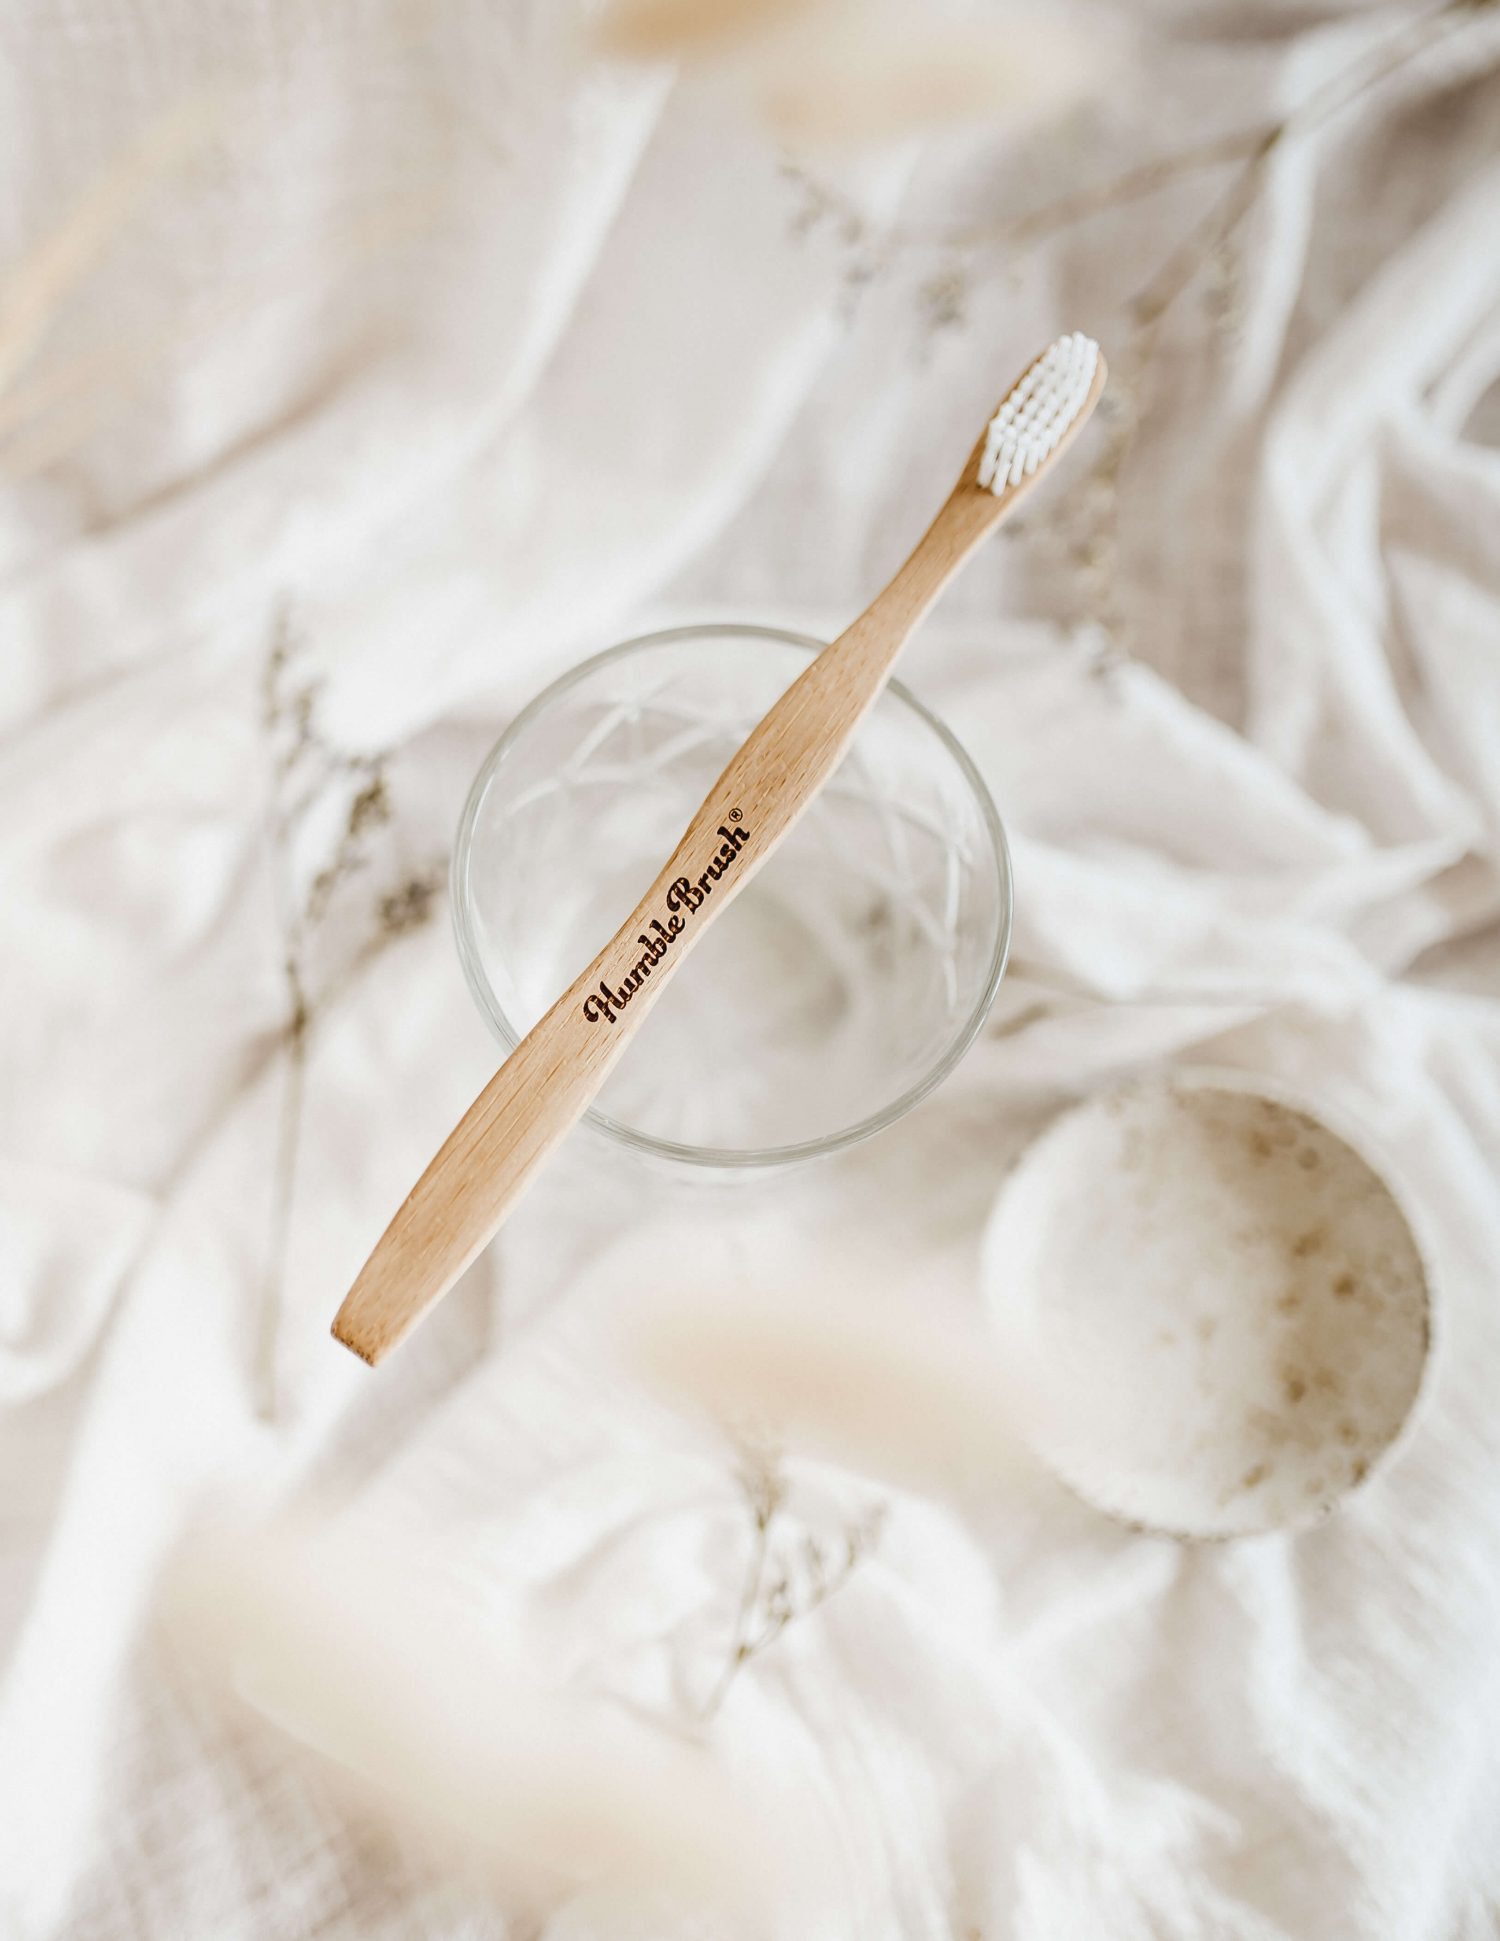 Bamboo Toothbrush Humble Co Sustainable Ethical Nowhere & Everywhere Reusable Straws Carry Pouch Hemp 100% Zero Waste Kit Plastic Free Essentials Kit